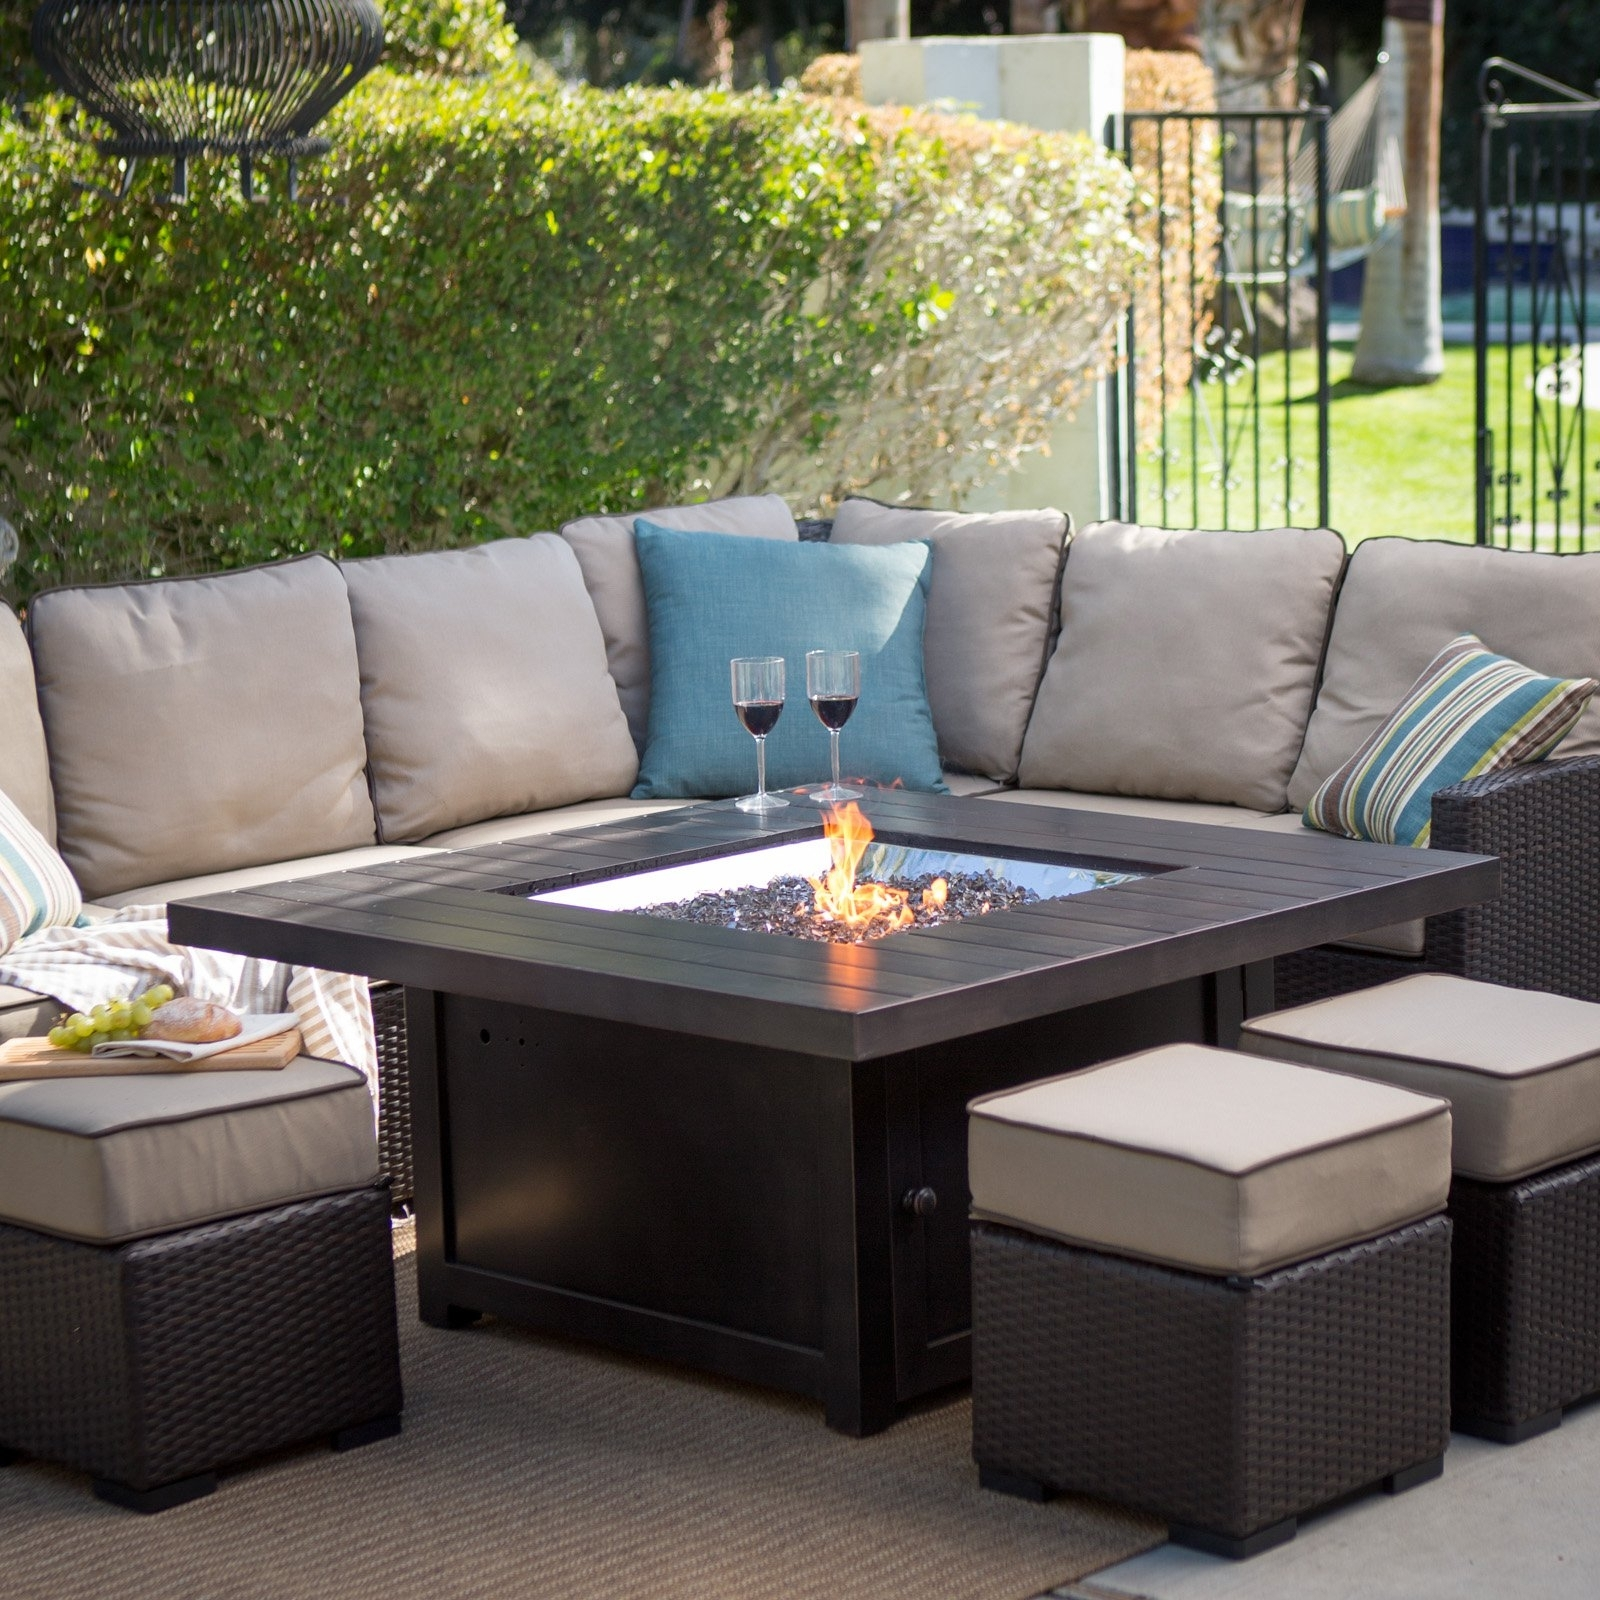 Furniture: High Quality Patio Furniture Columbus Ohio And Fire Pit Intended For Recent Patio Conversation Sets With Gas Fire Pit (View 6 of 20)